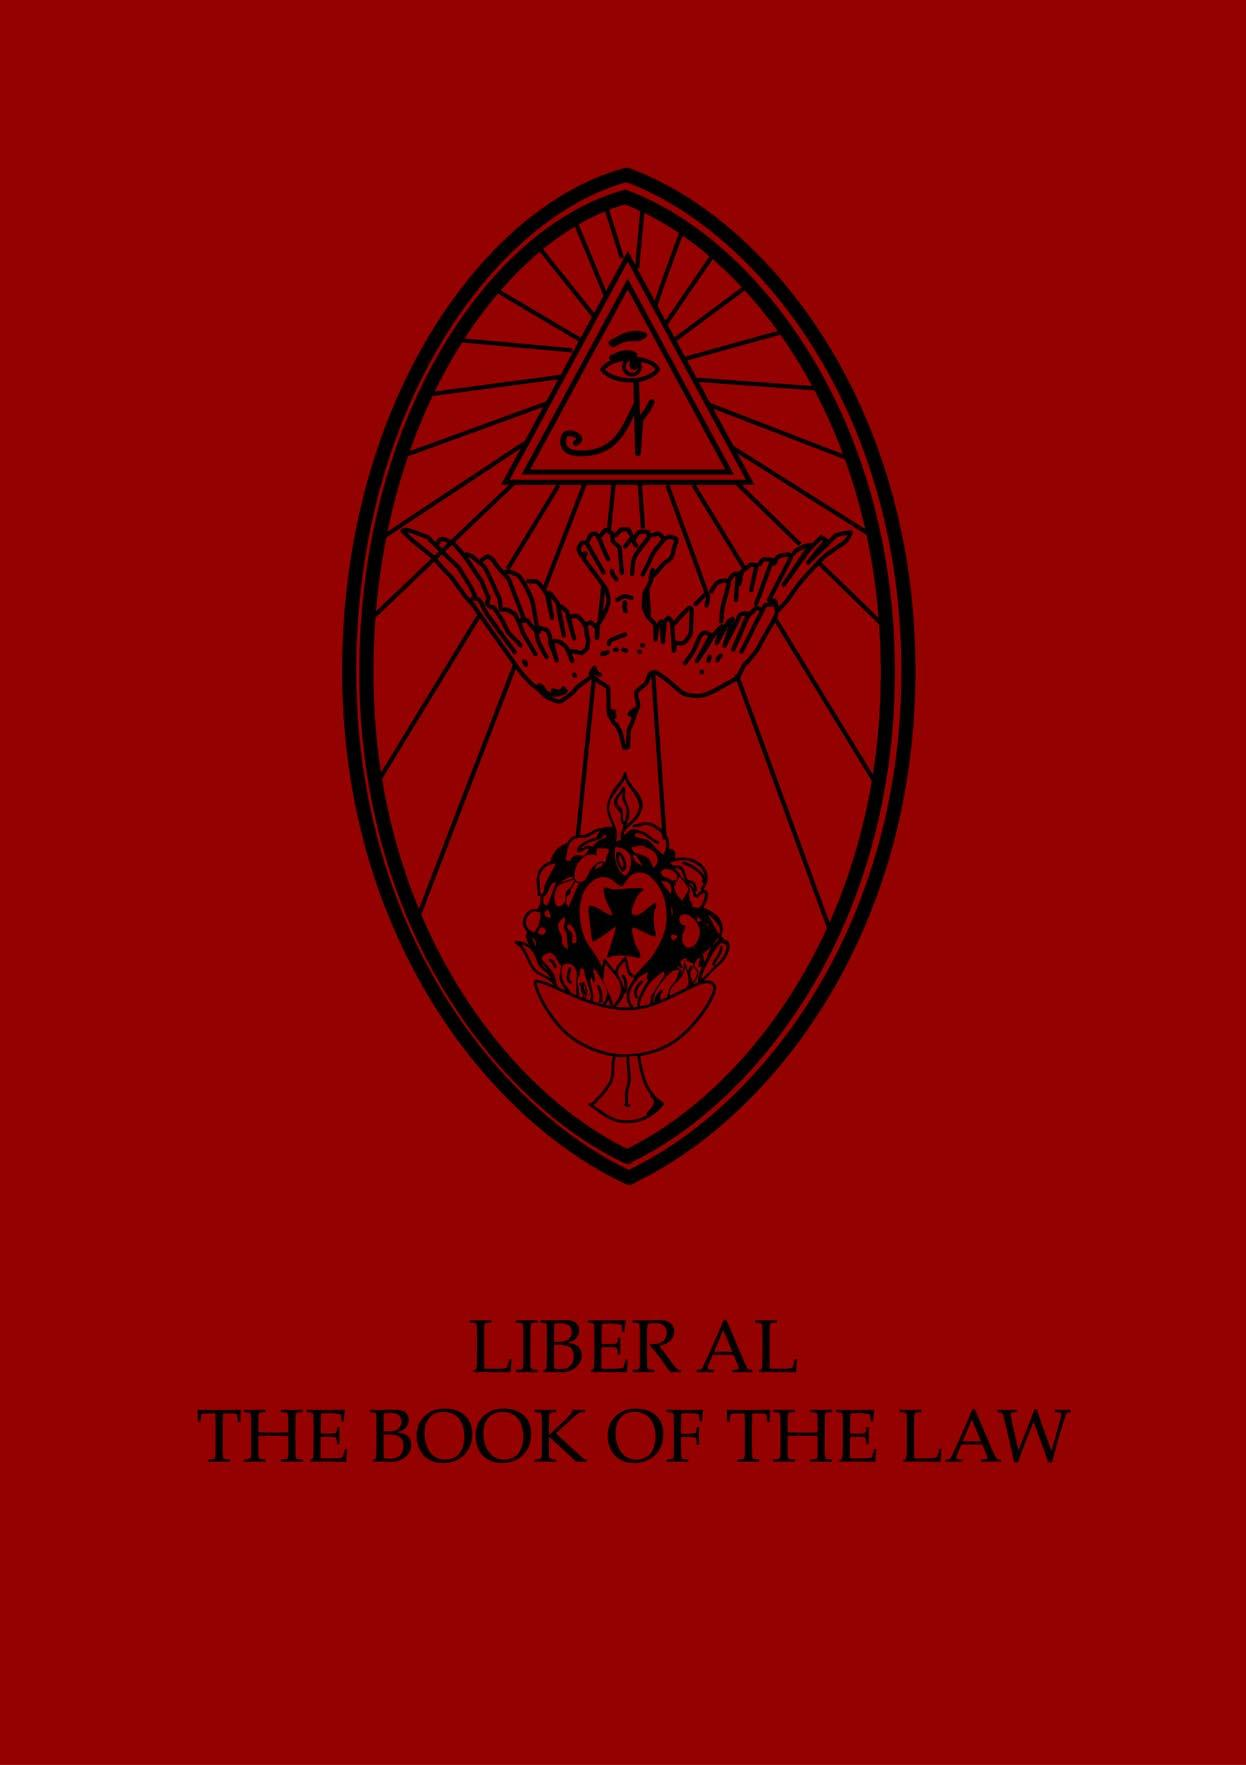 Liber AL - The Book Of The Law (Aleister Crowley) Seshat Publishing House Universal